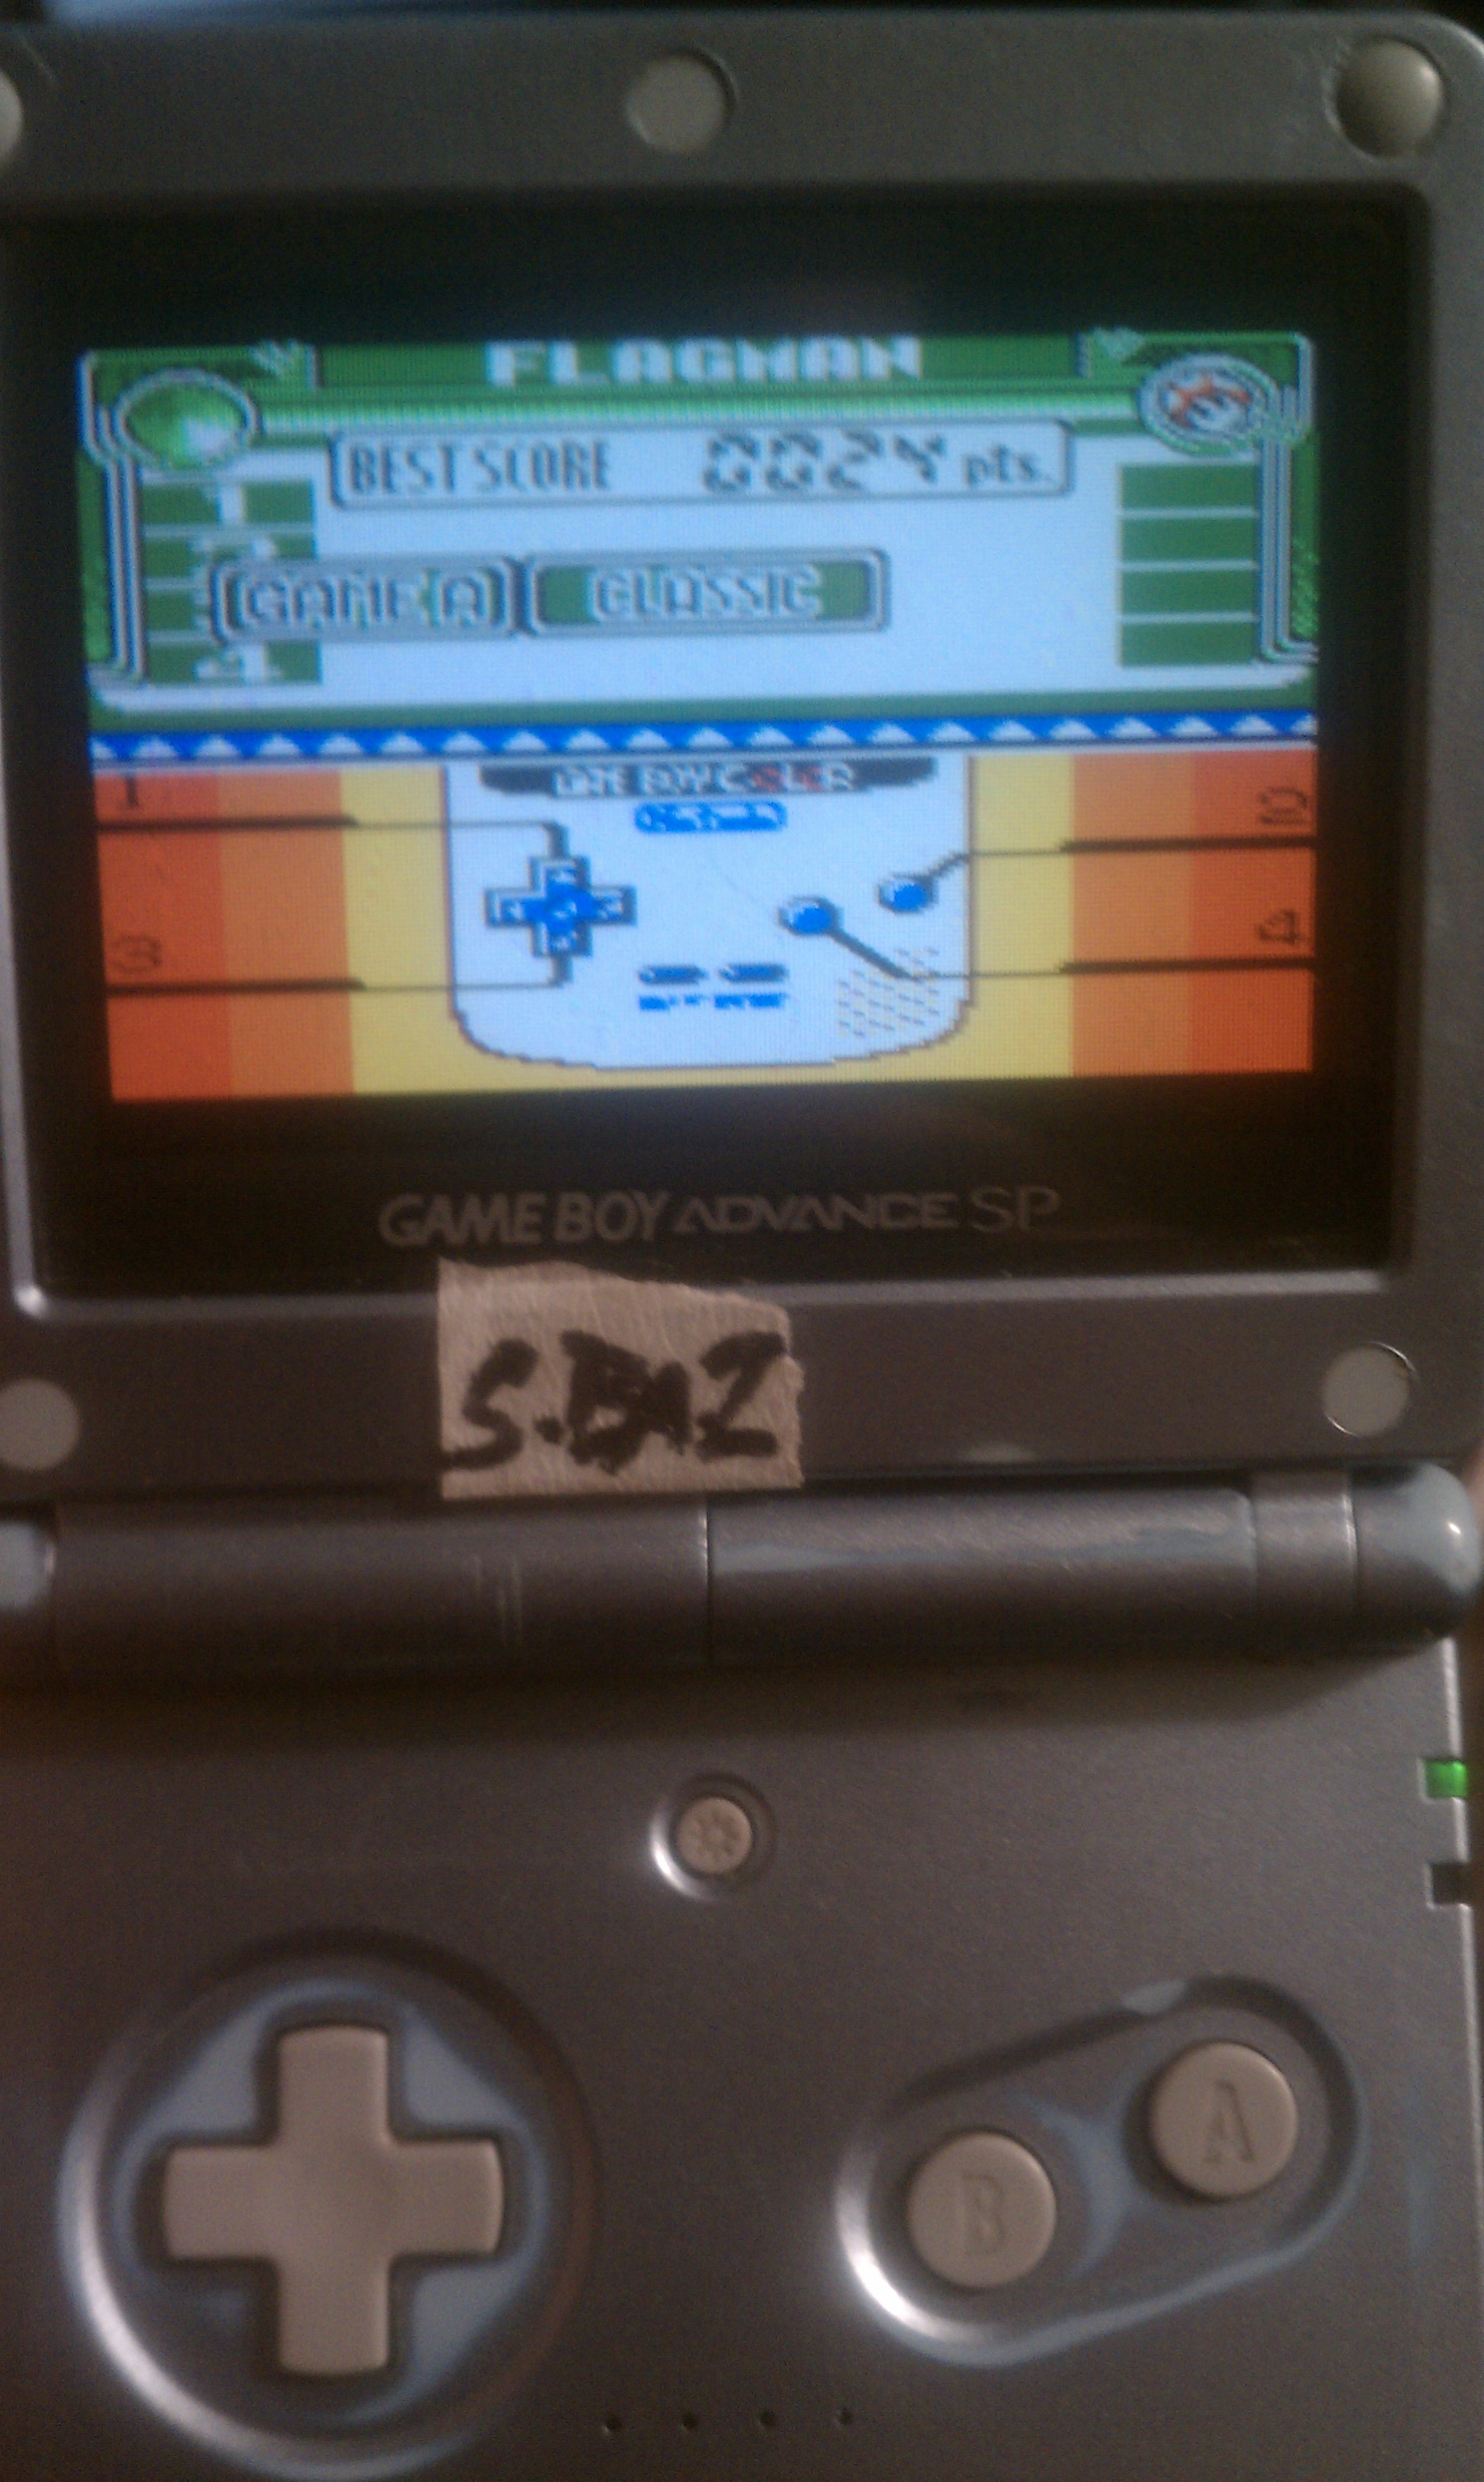 S.BAZ: Game & Watch Gallery 3: Flagman [Classic: Game A] (Game Boy Color) 24 points on 2018-08-24 15:06:43